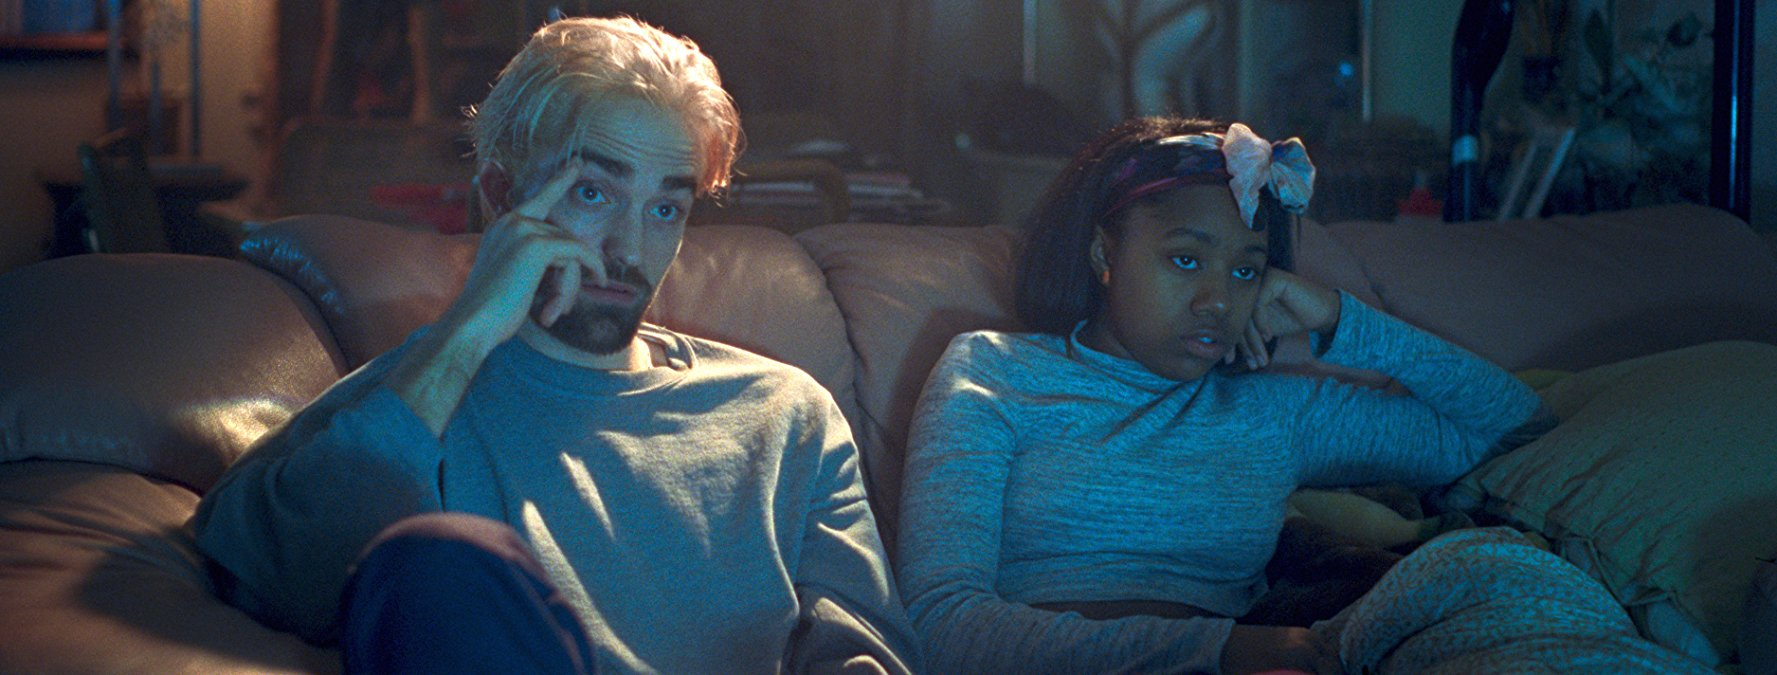 Robert Pattinson and Taliah Webster in Good Time (2017)